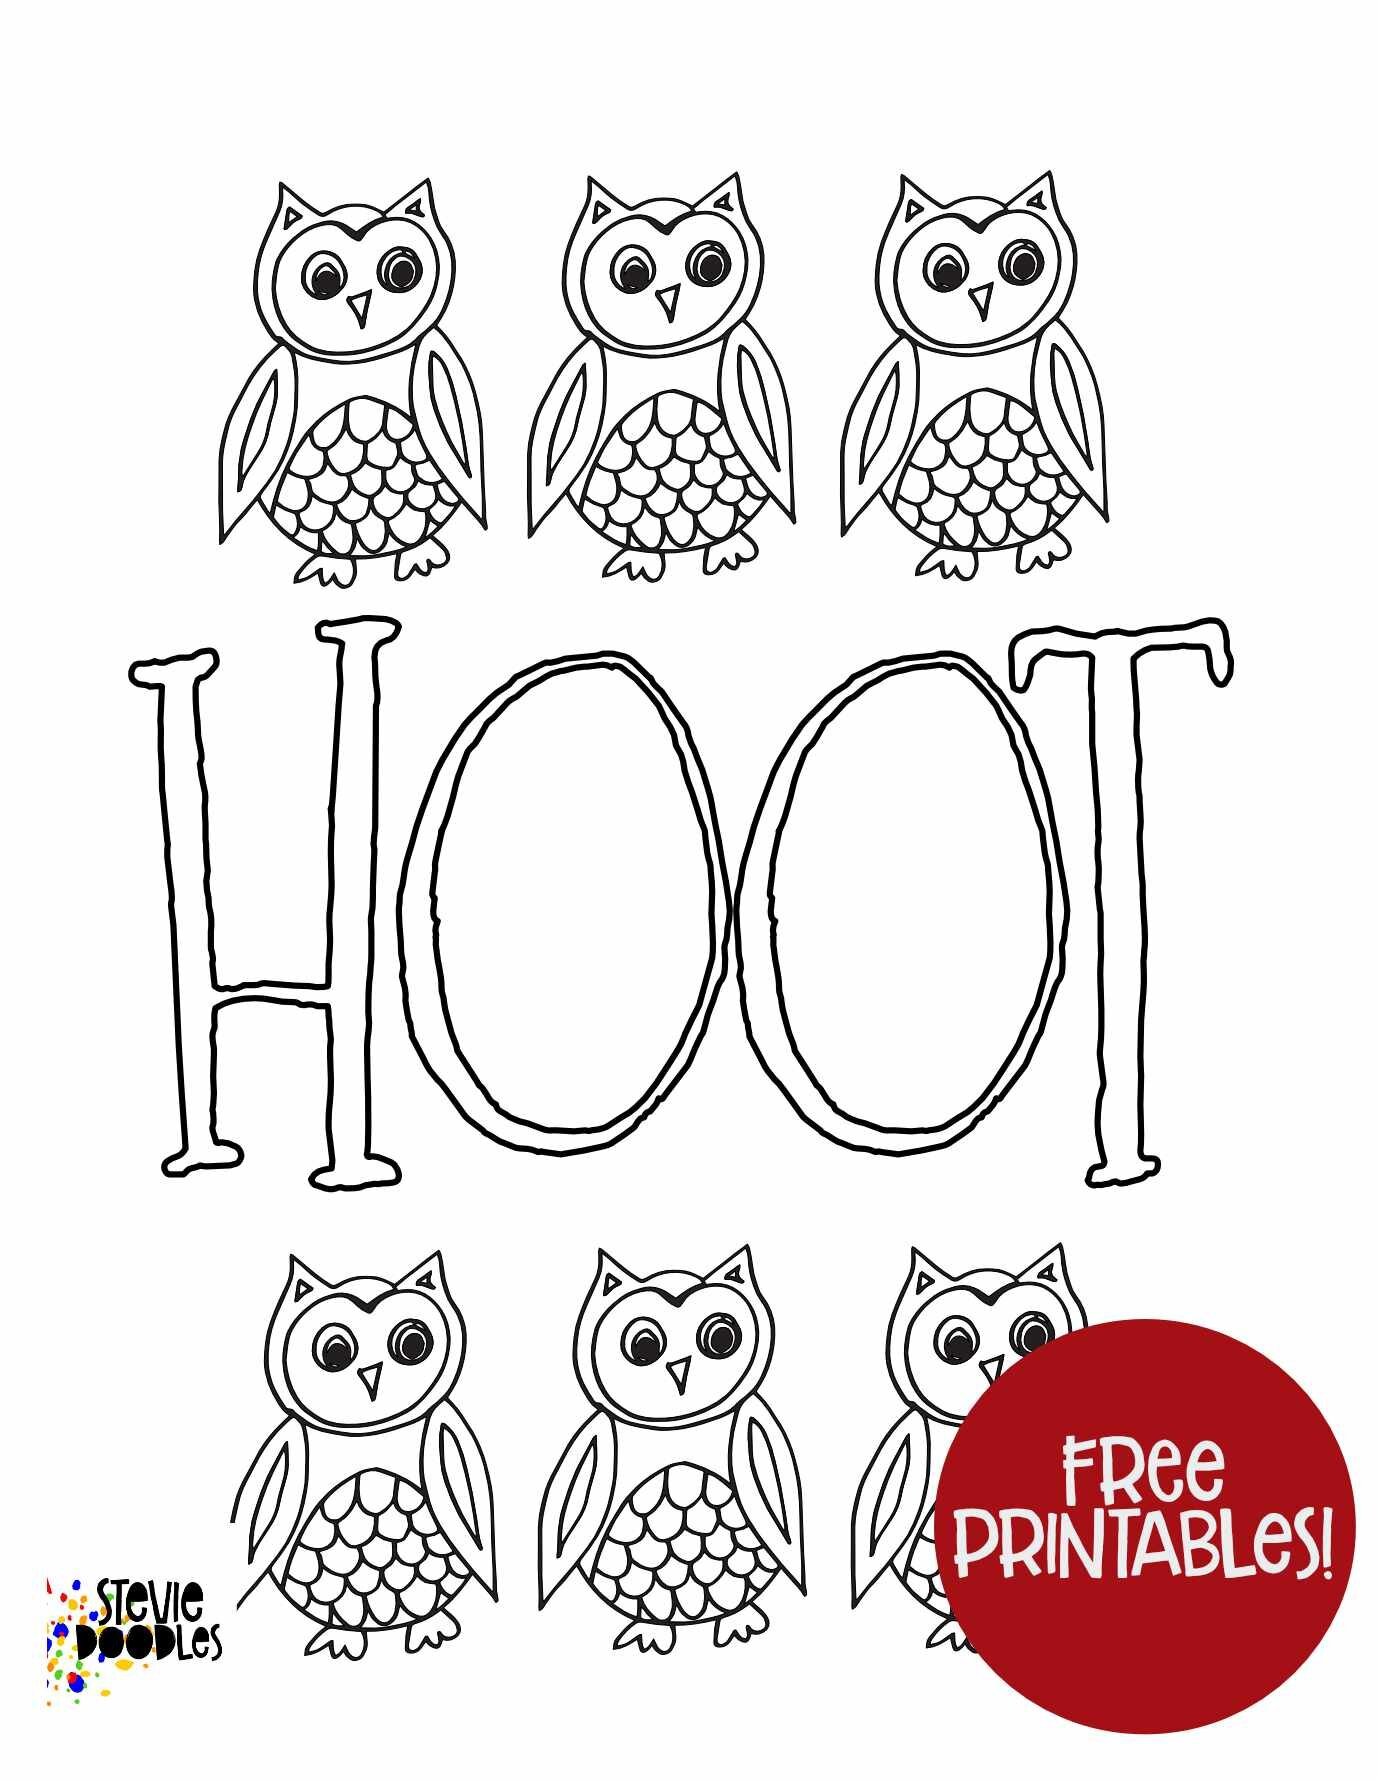 Hoot Free Printable Owl Coloring Page Stevie Doodles Free Printable Coloring Pages